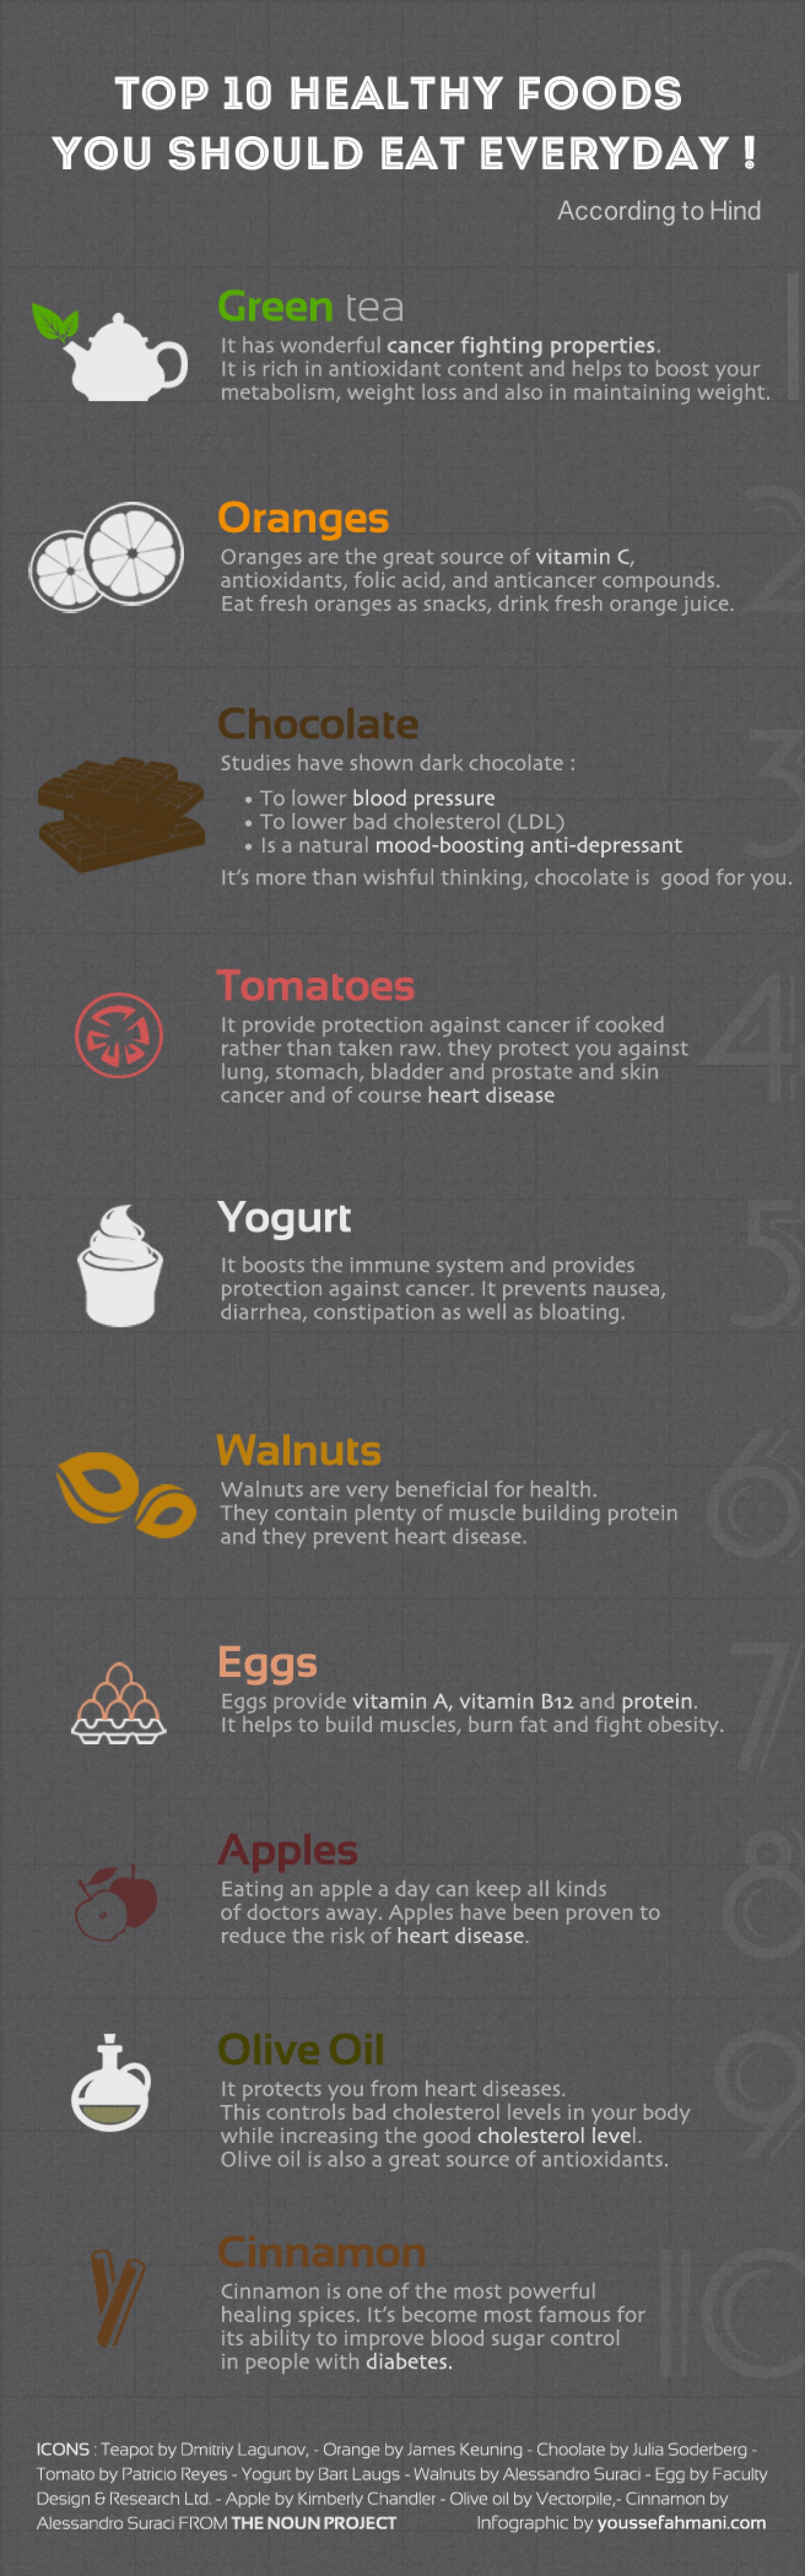 Must Eat Everyday Food Items - Infographic